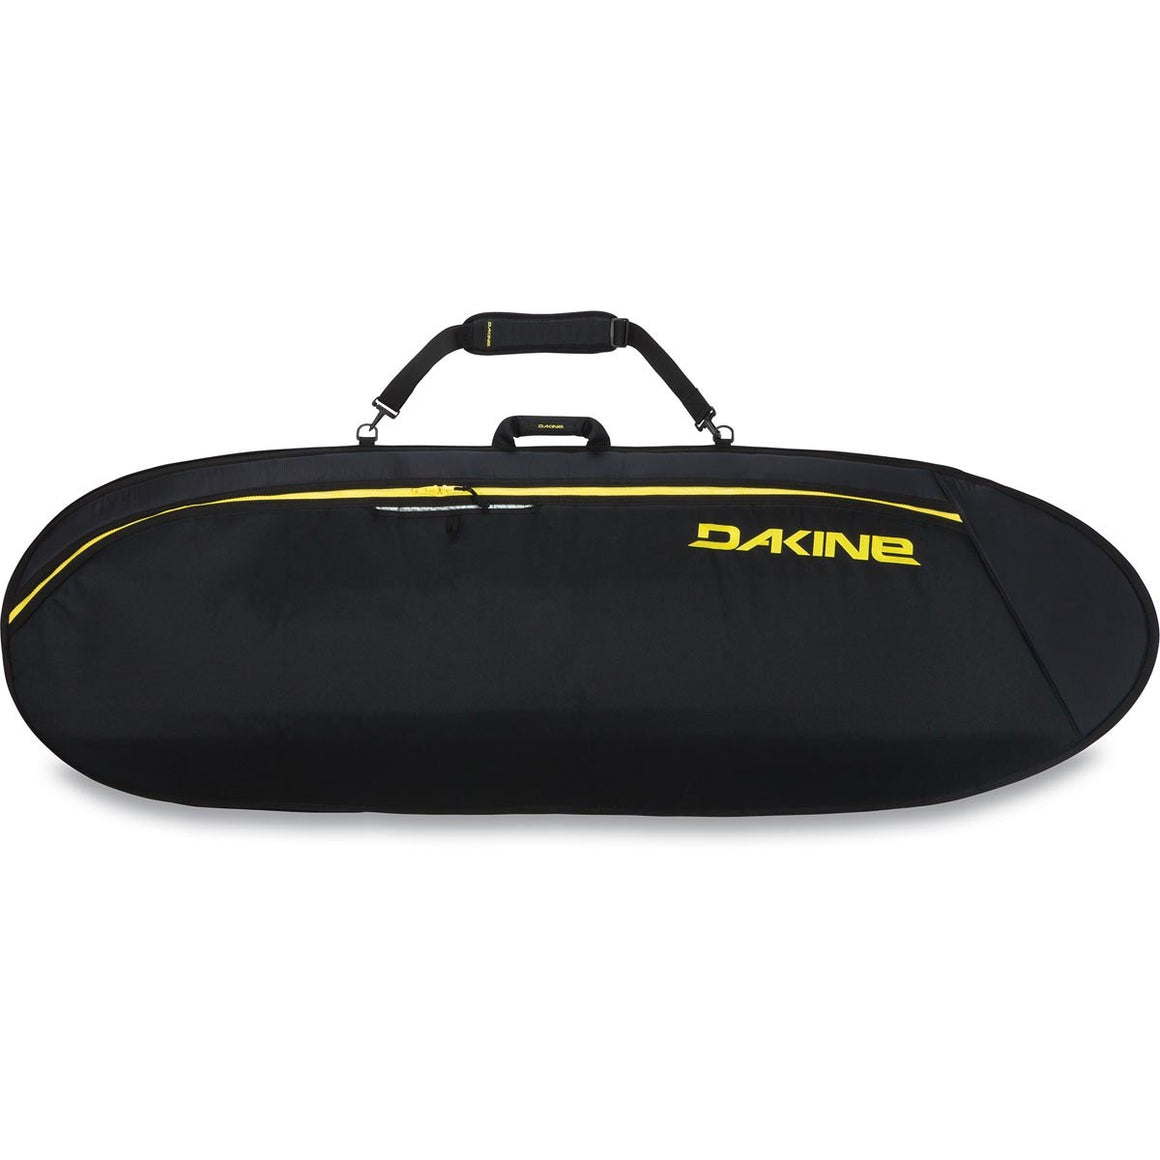 Dakine Board Cover - Recon Hybrid Single - Surf Ontario